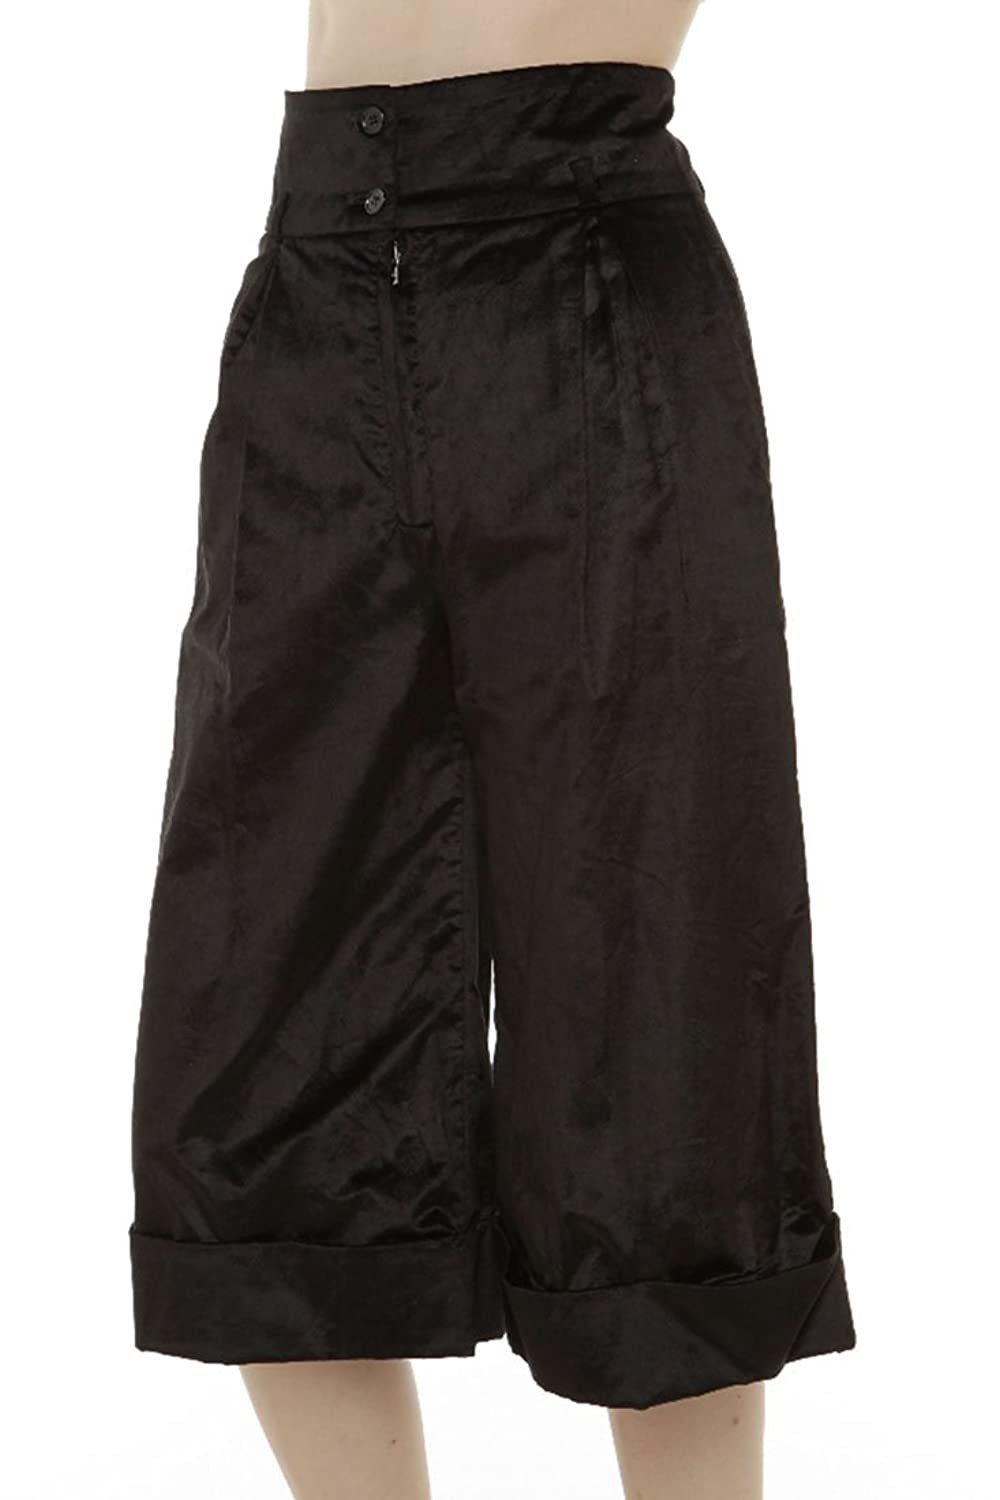 Dolce & Gabbana Womens Pants Trousers, 40, Black